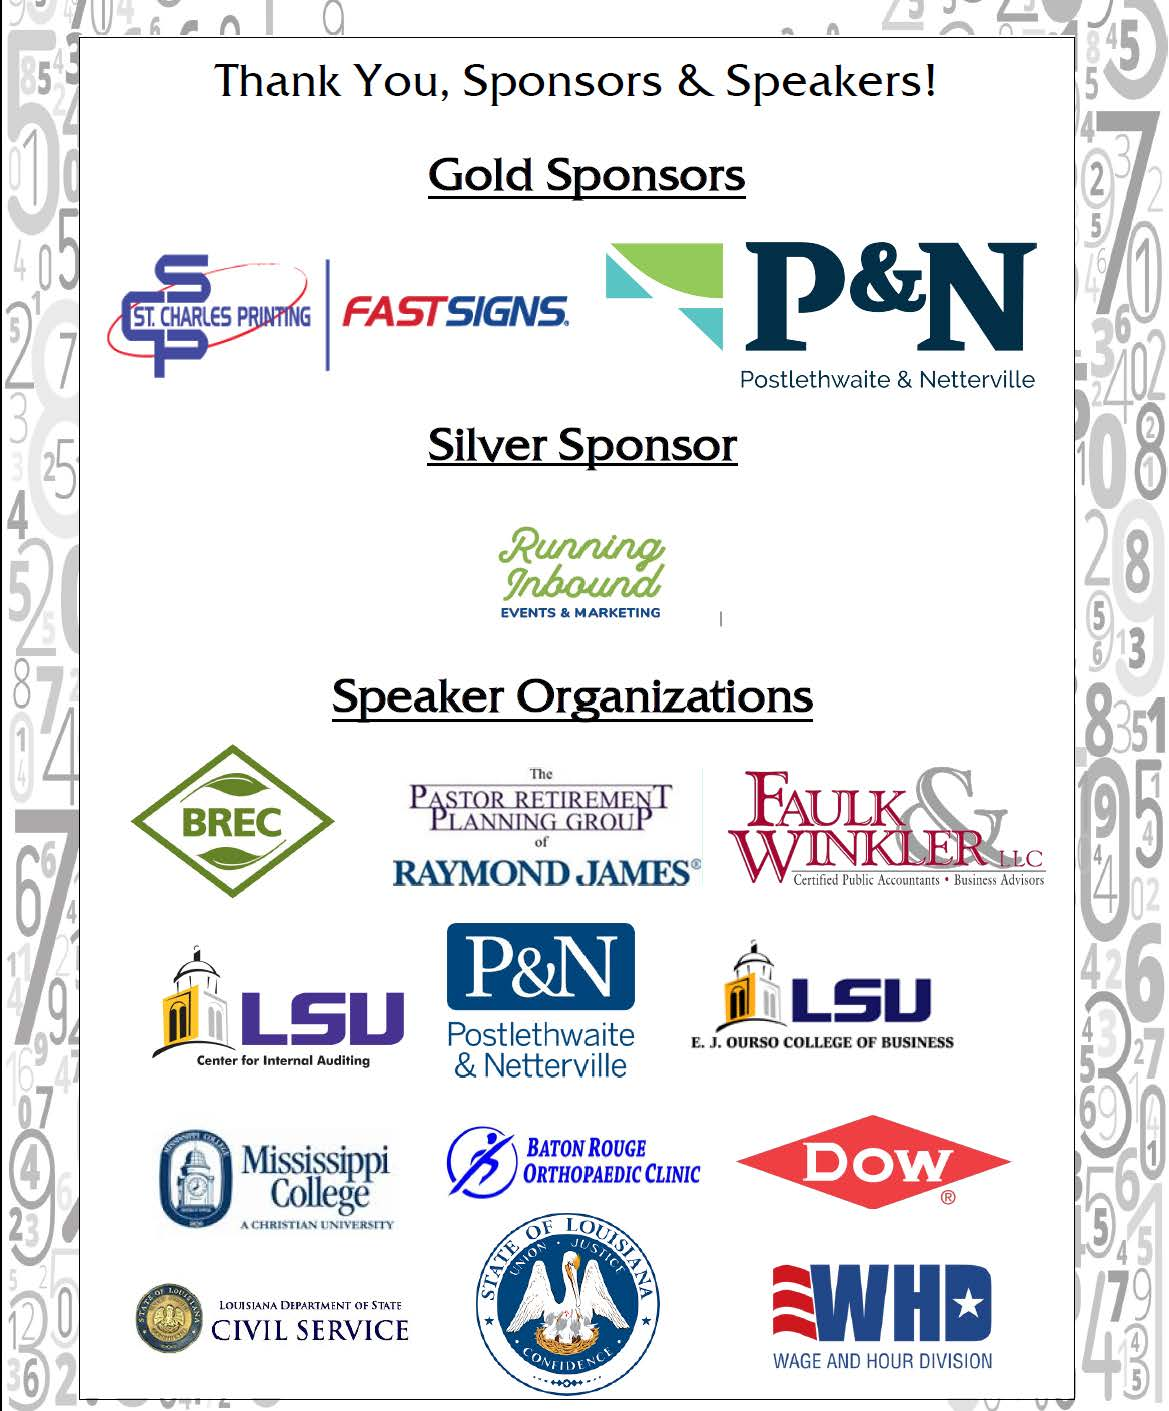 2017 Fall Sponsors & Speakers